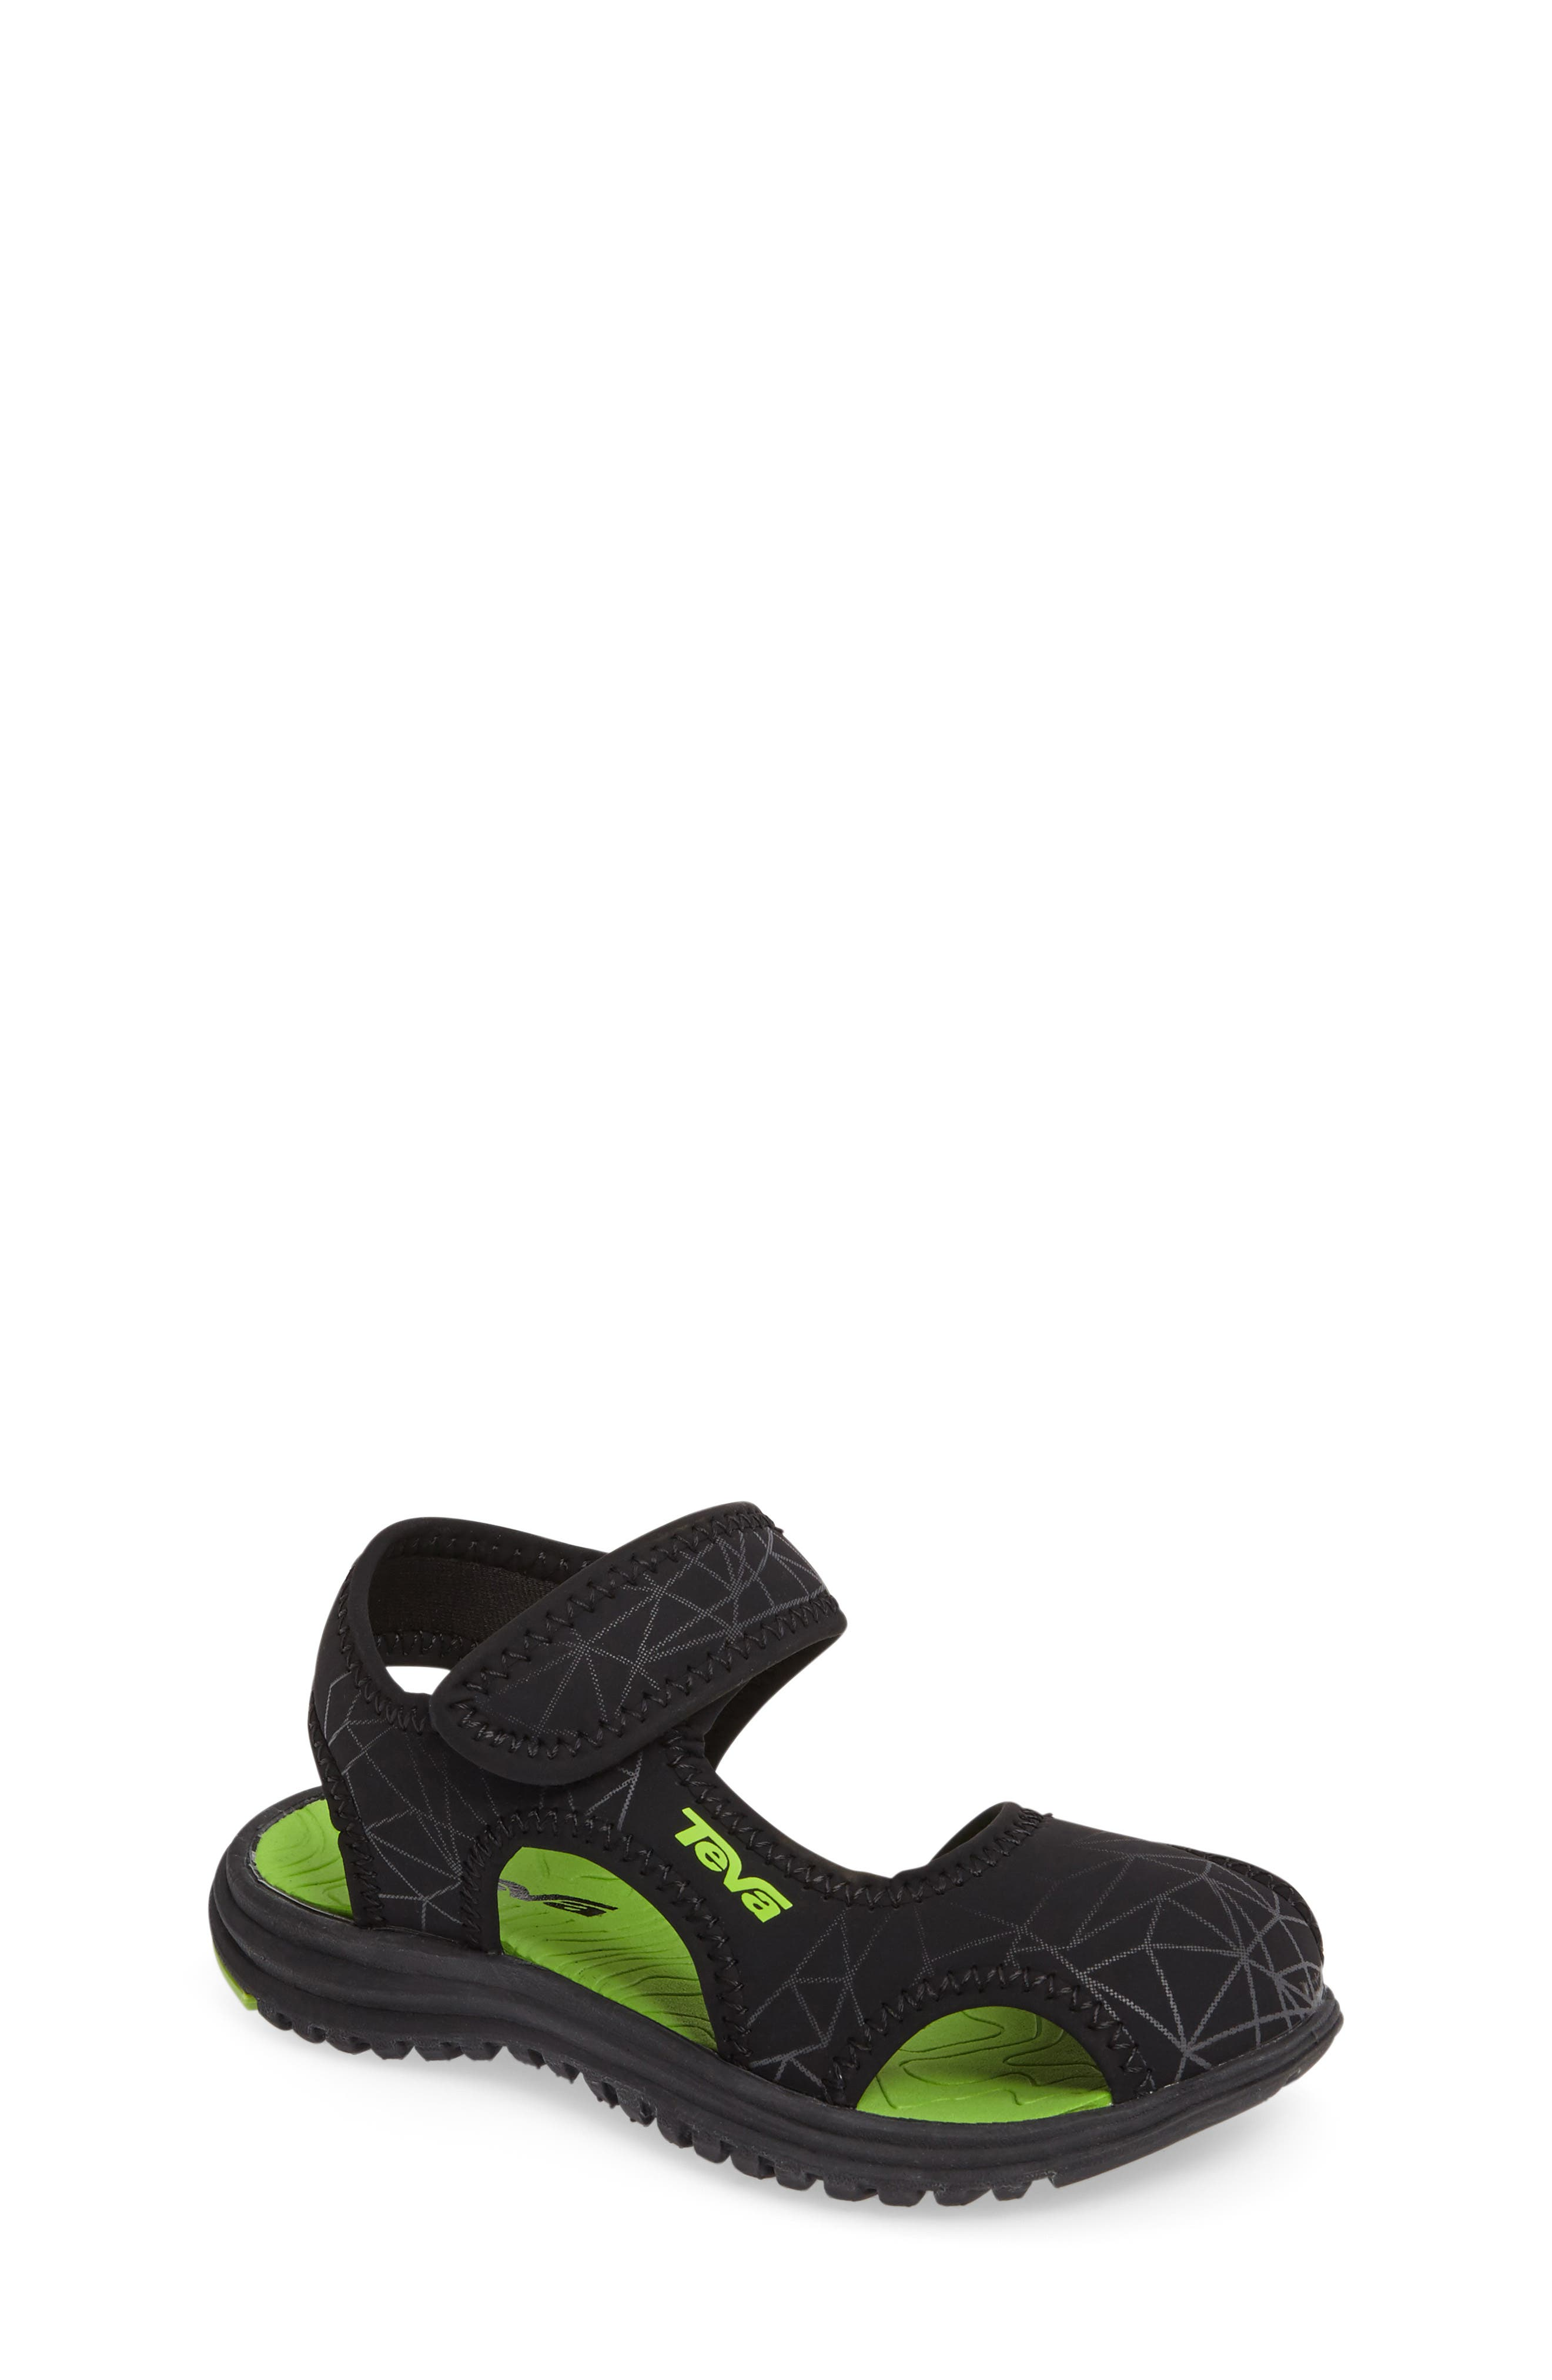 Alternate Image 1 Selected - Teva 'Tidepool' Water Sandal (Baby, Walker, Toddler & Little Kid)